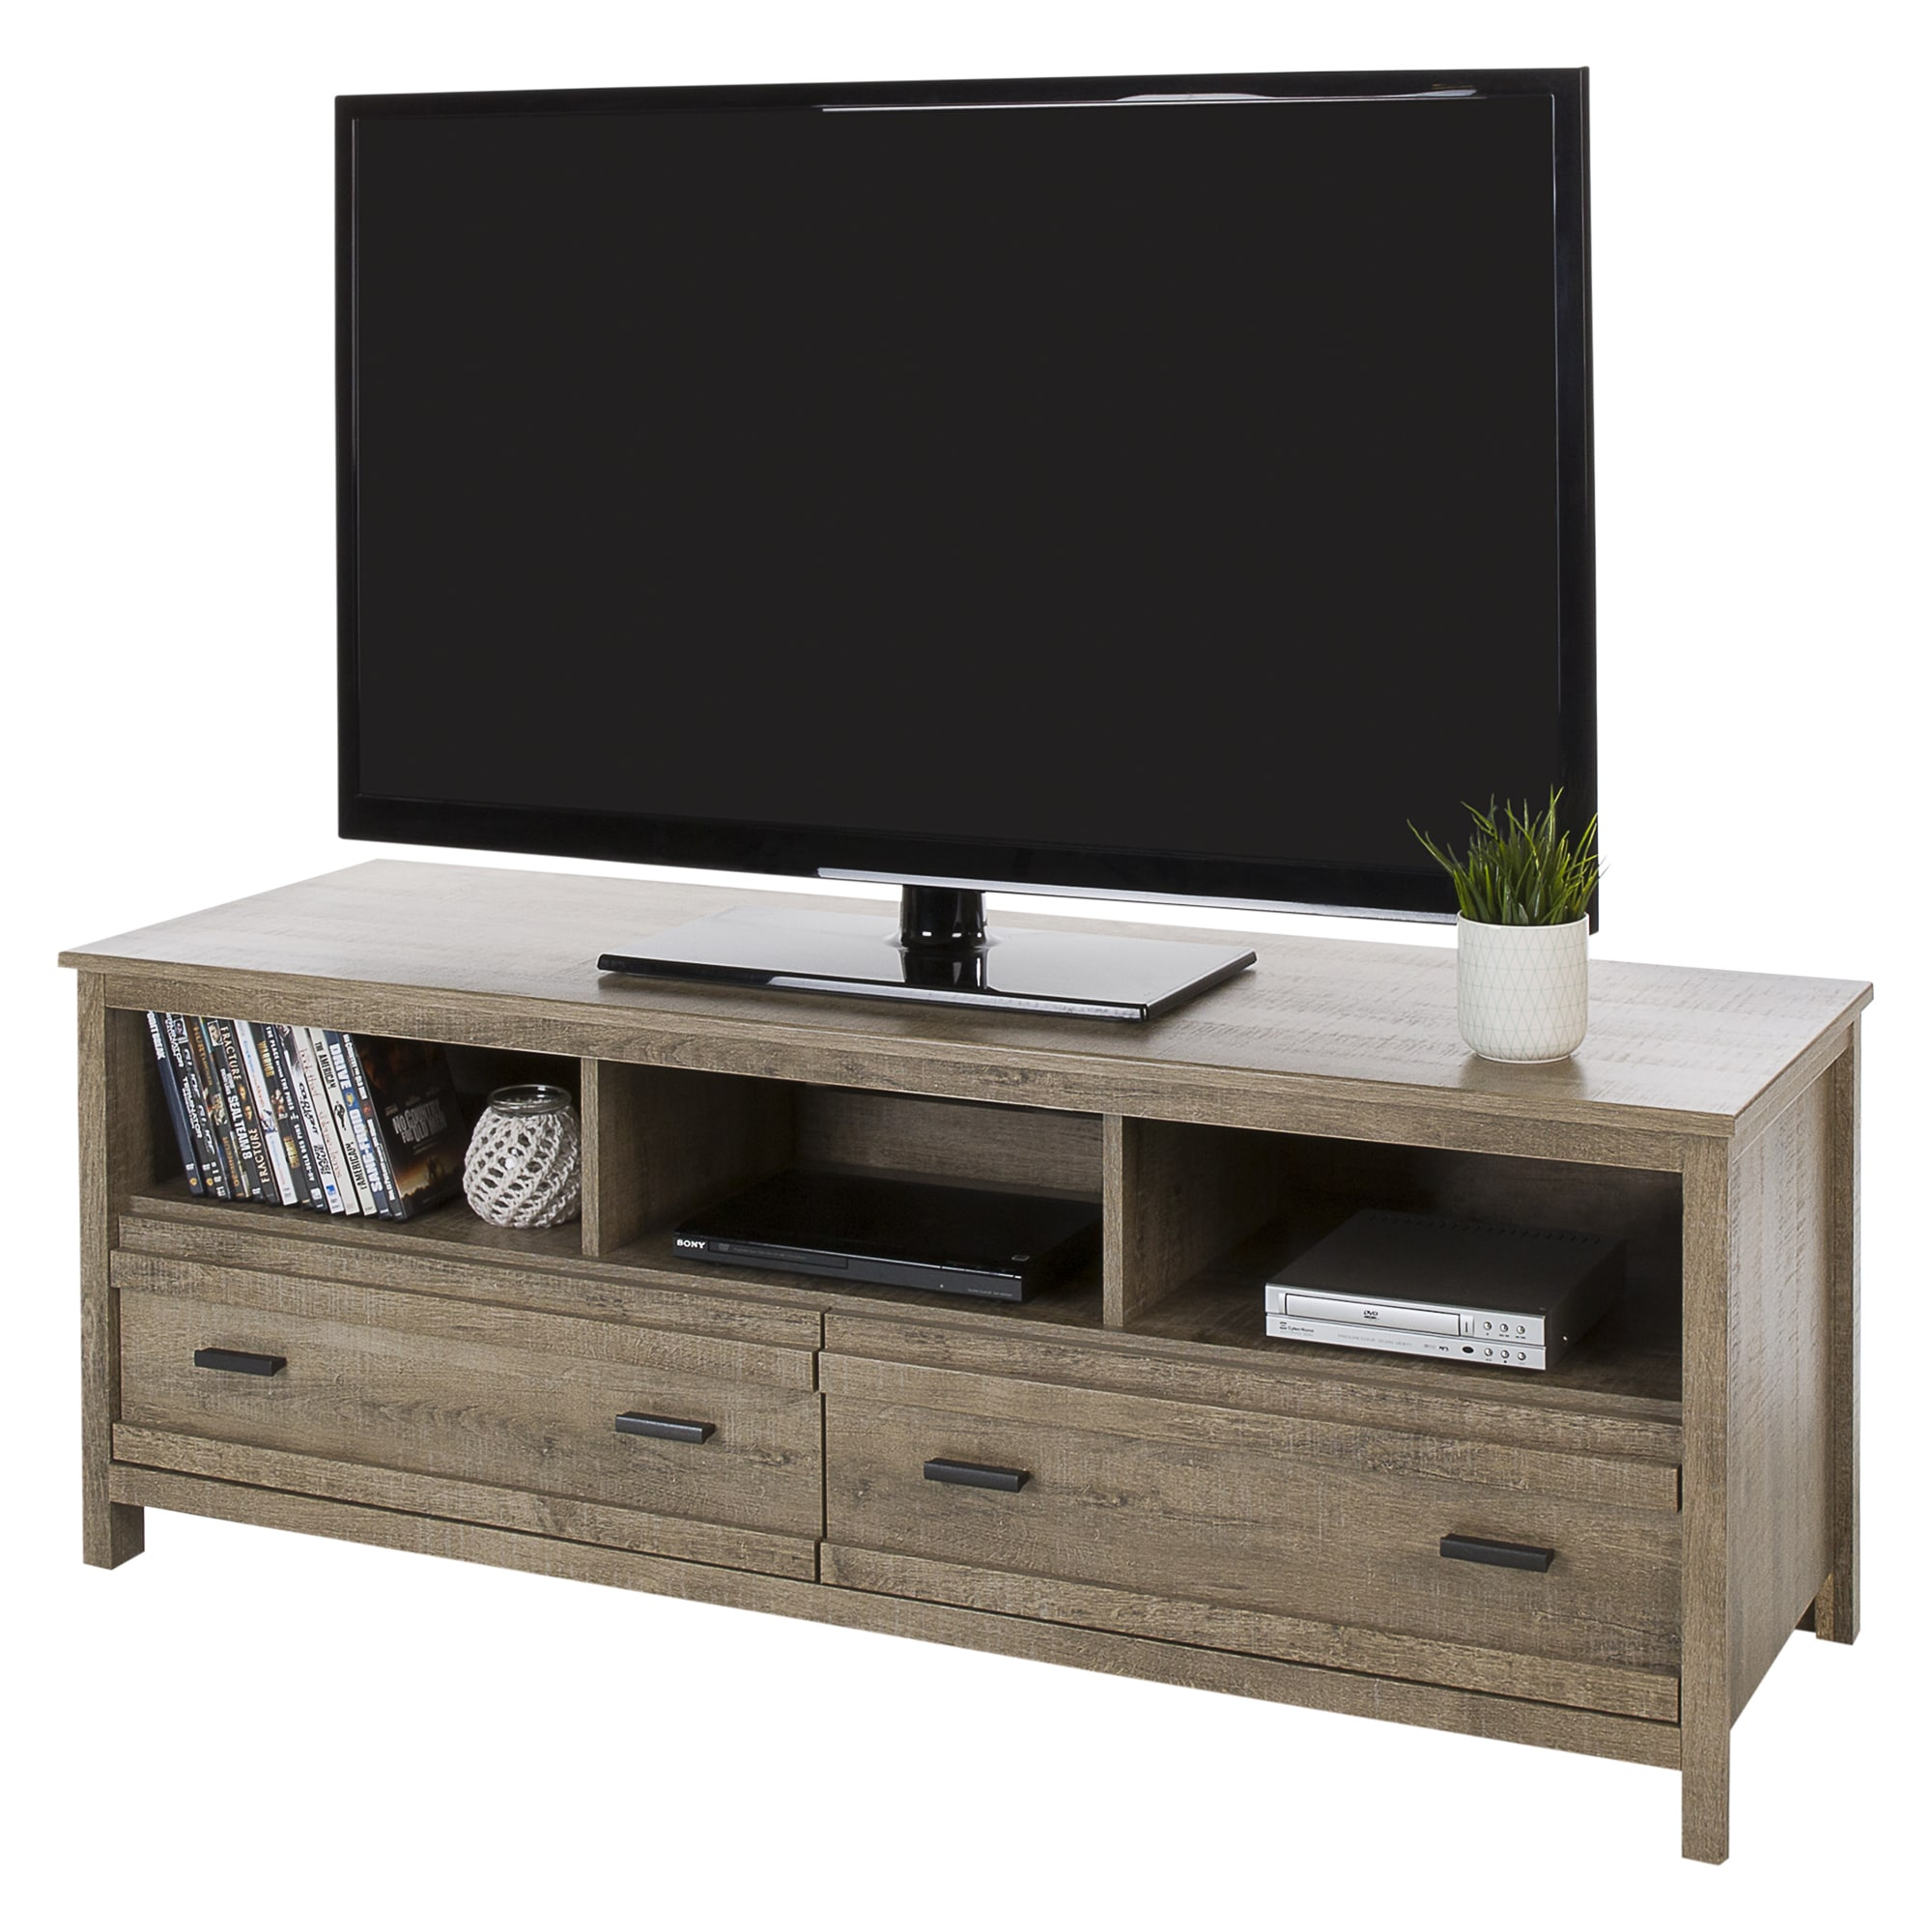 Shop South Shore Exhibit Tv Stand For Tvs Up To 60 Free Shipping